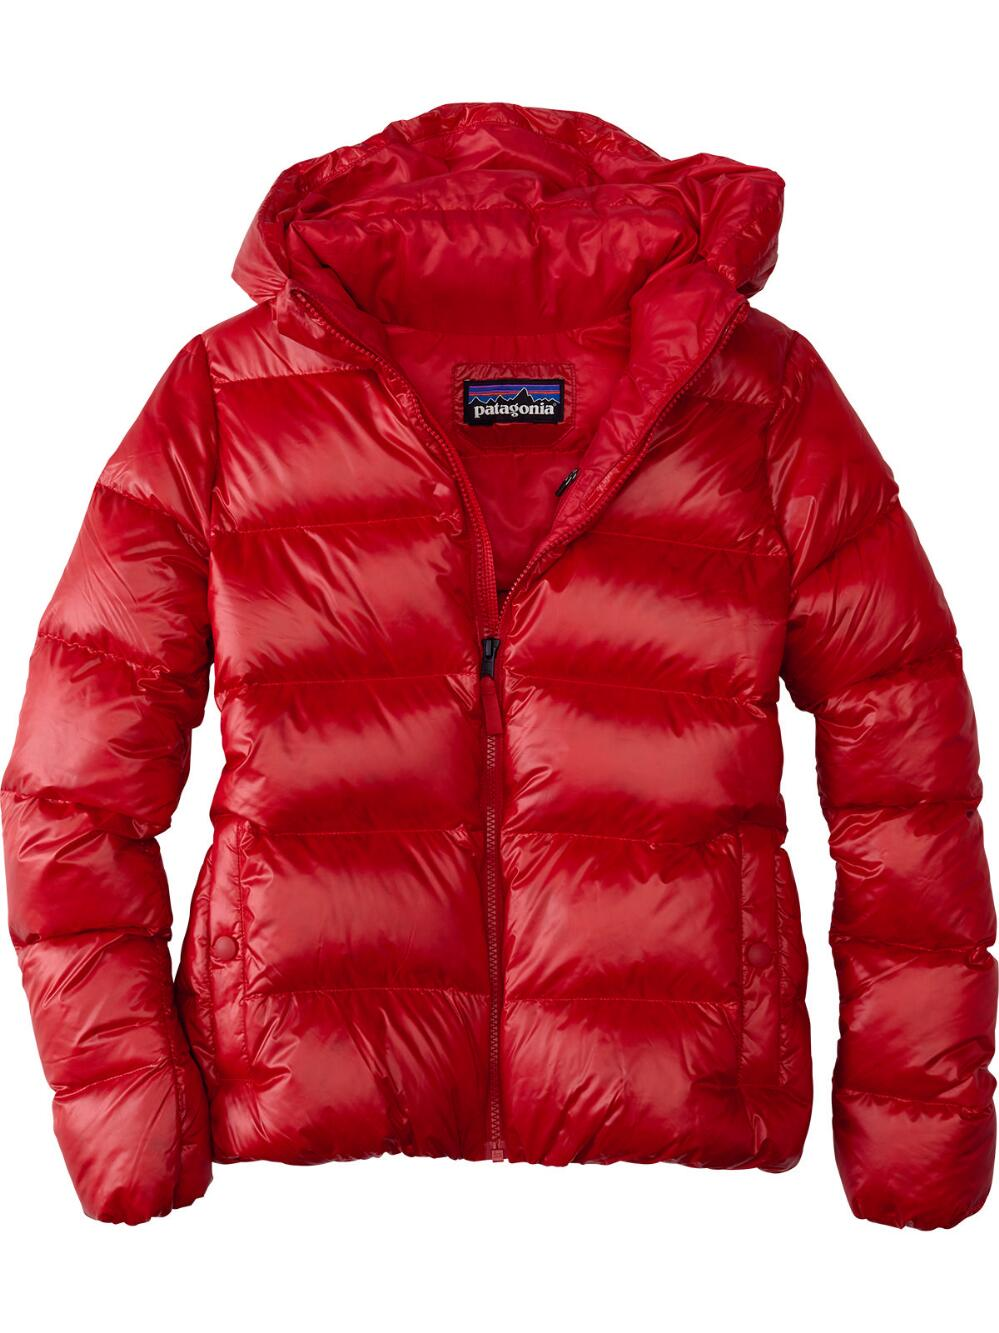 Patagonia Womens Puffer Jacket Recycled Down Puffer Jacket Women Women S Puffer Puffer Jacket Outfit [ 1333 x 999 Pixel ]